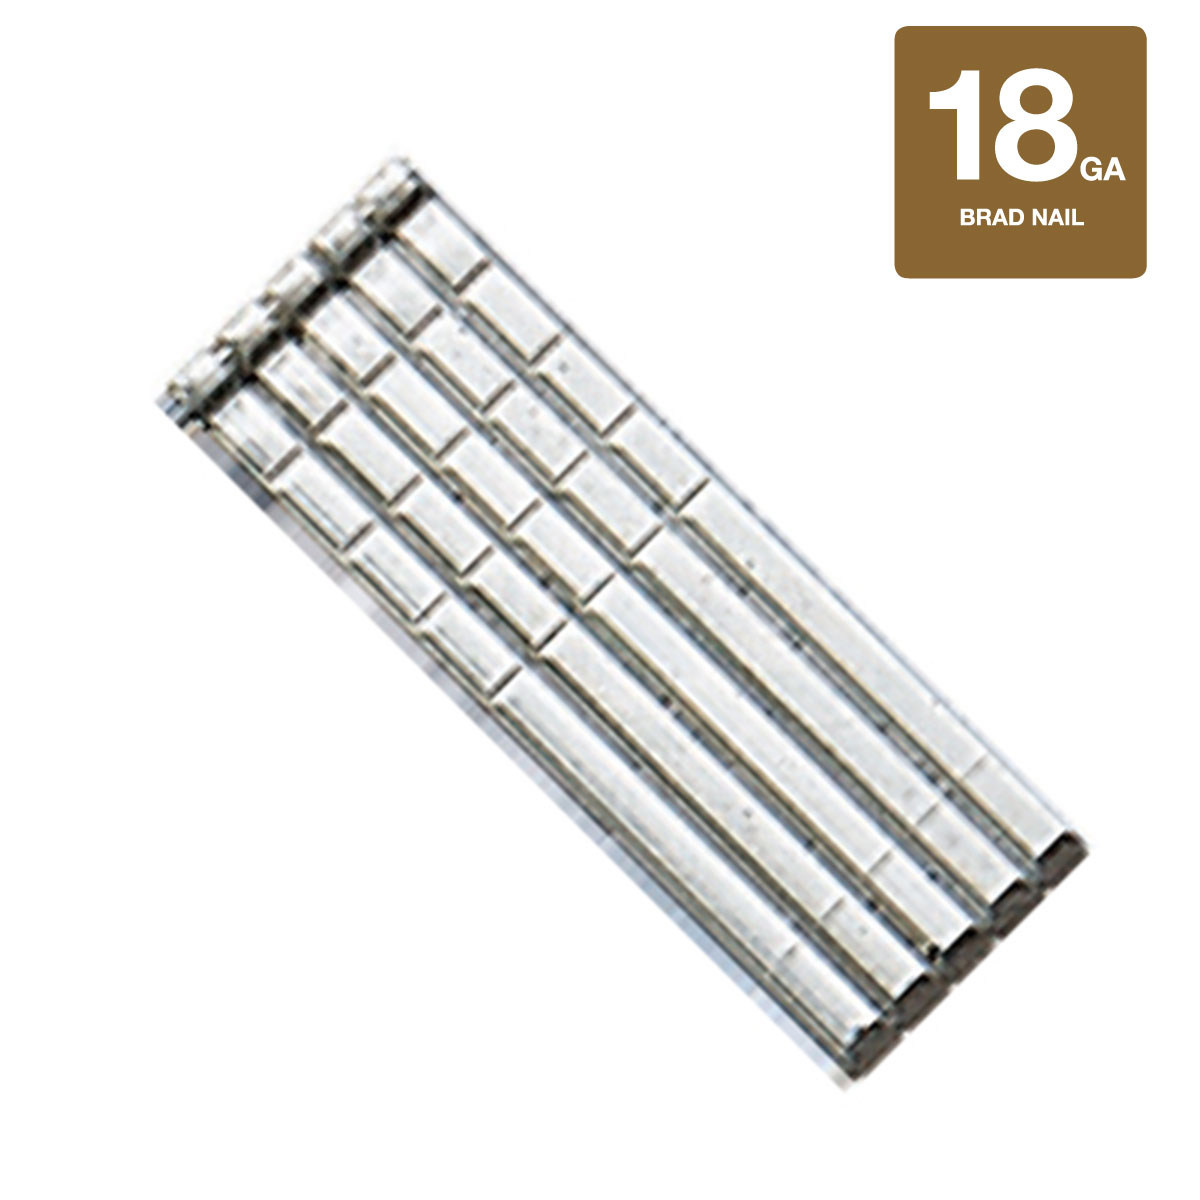 """1"""" x 18 Gauge Stainless Steel Brad Nails - 5000 Count Box"""